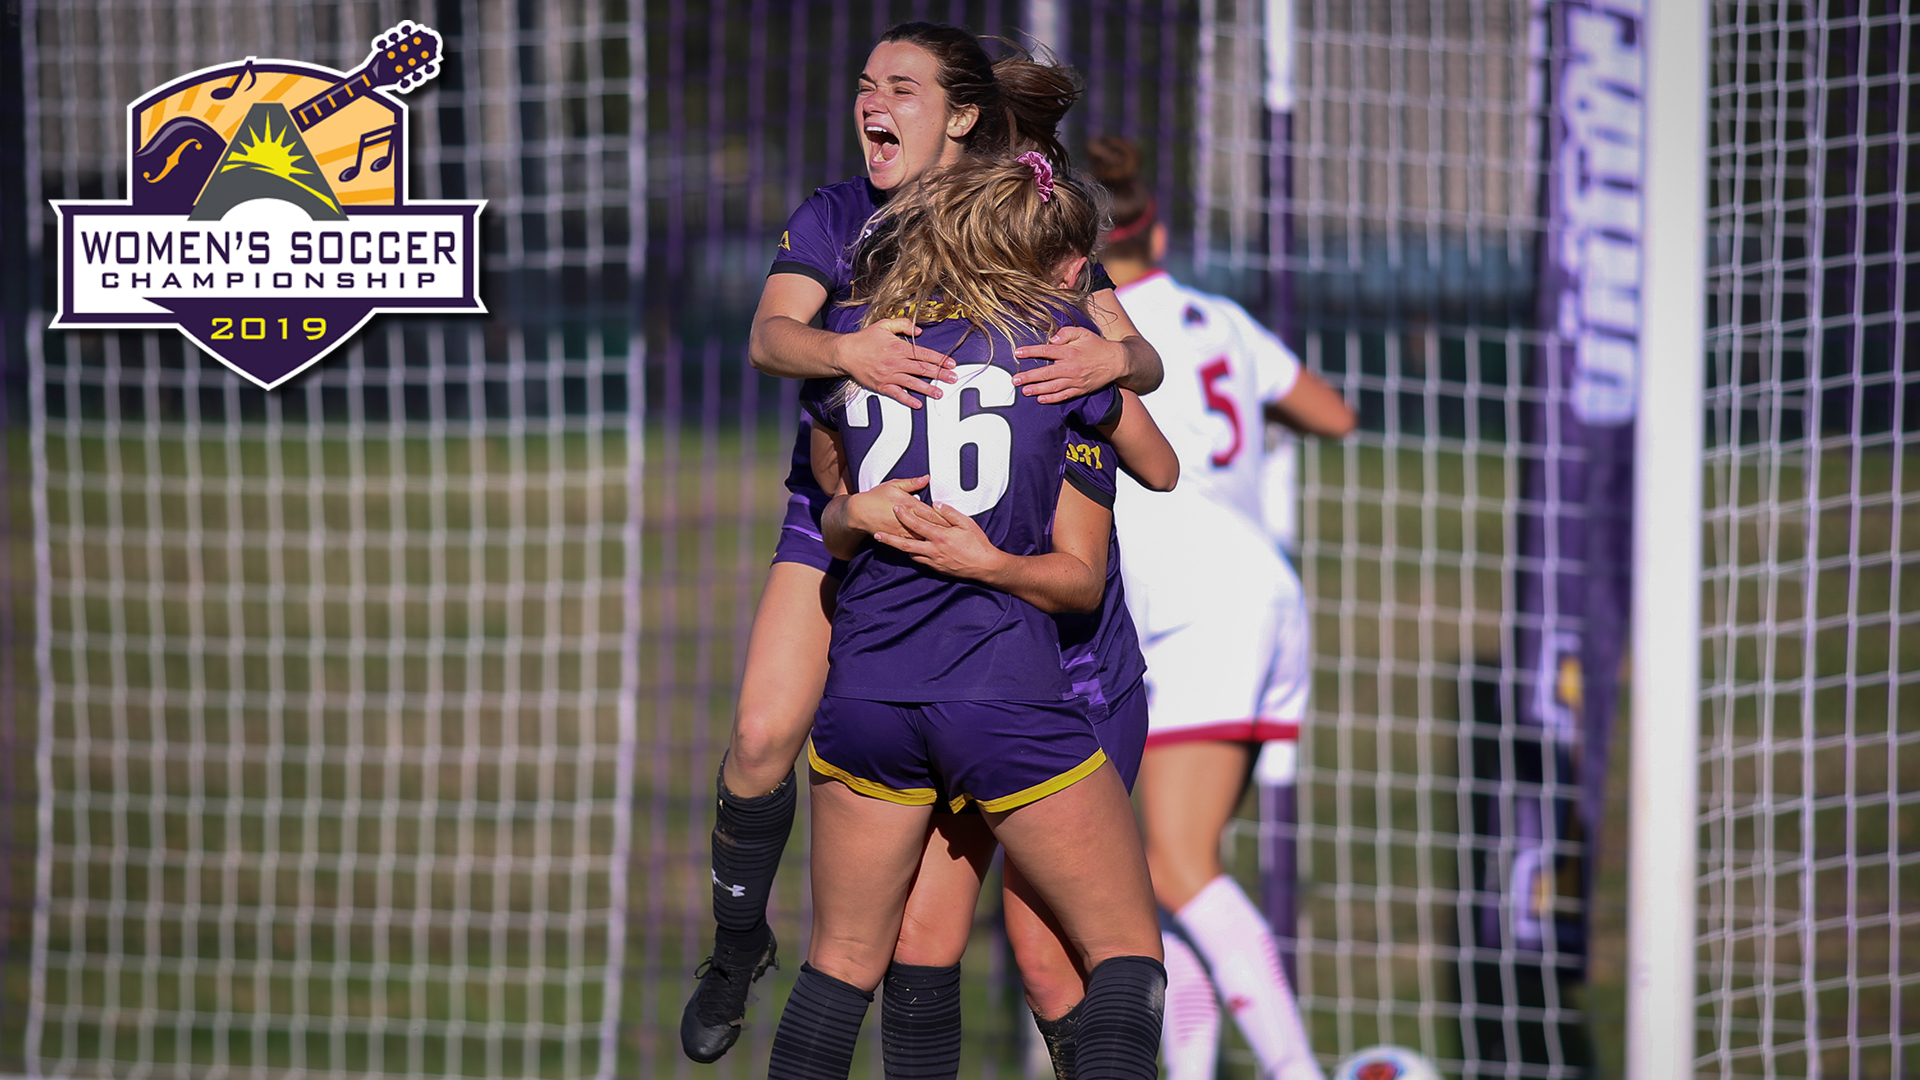 No. 2 Lipscomb Advances to Fifth Consecutive Women's @ASUNSoccer Championship Final